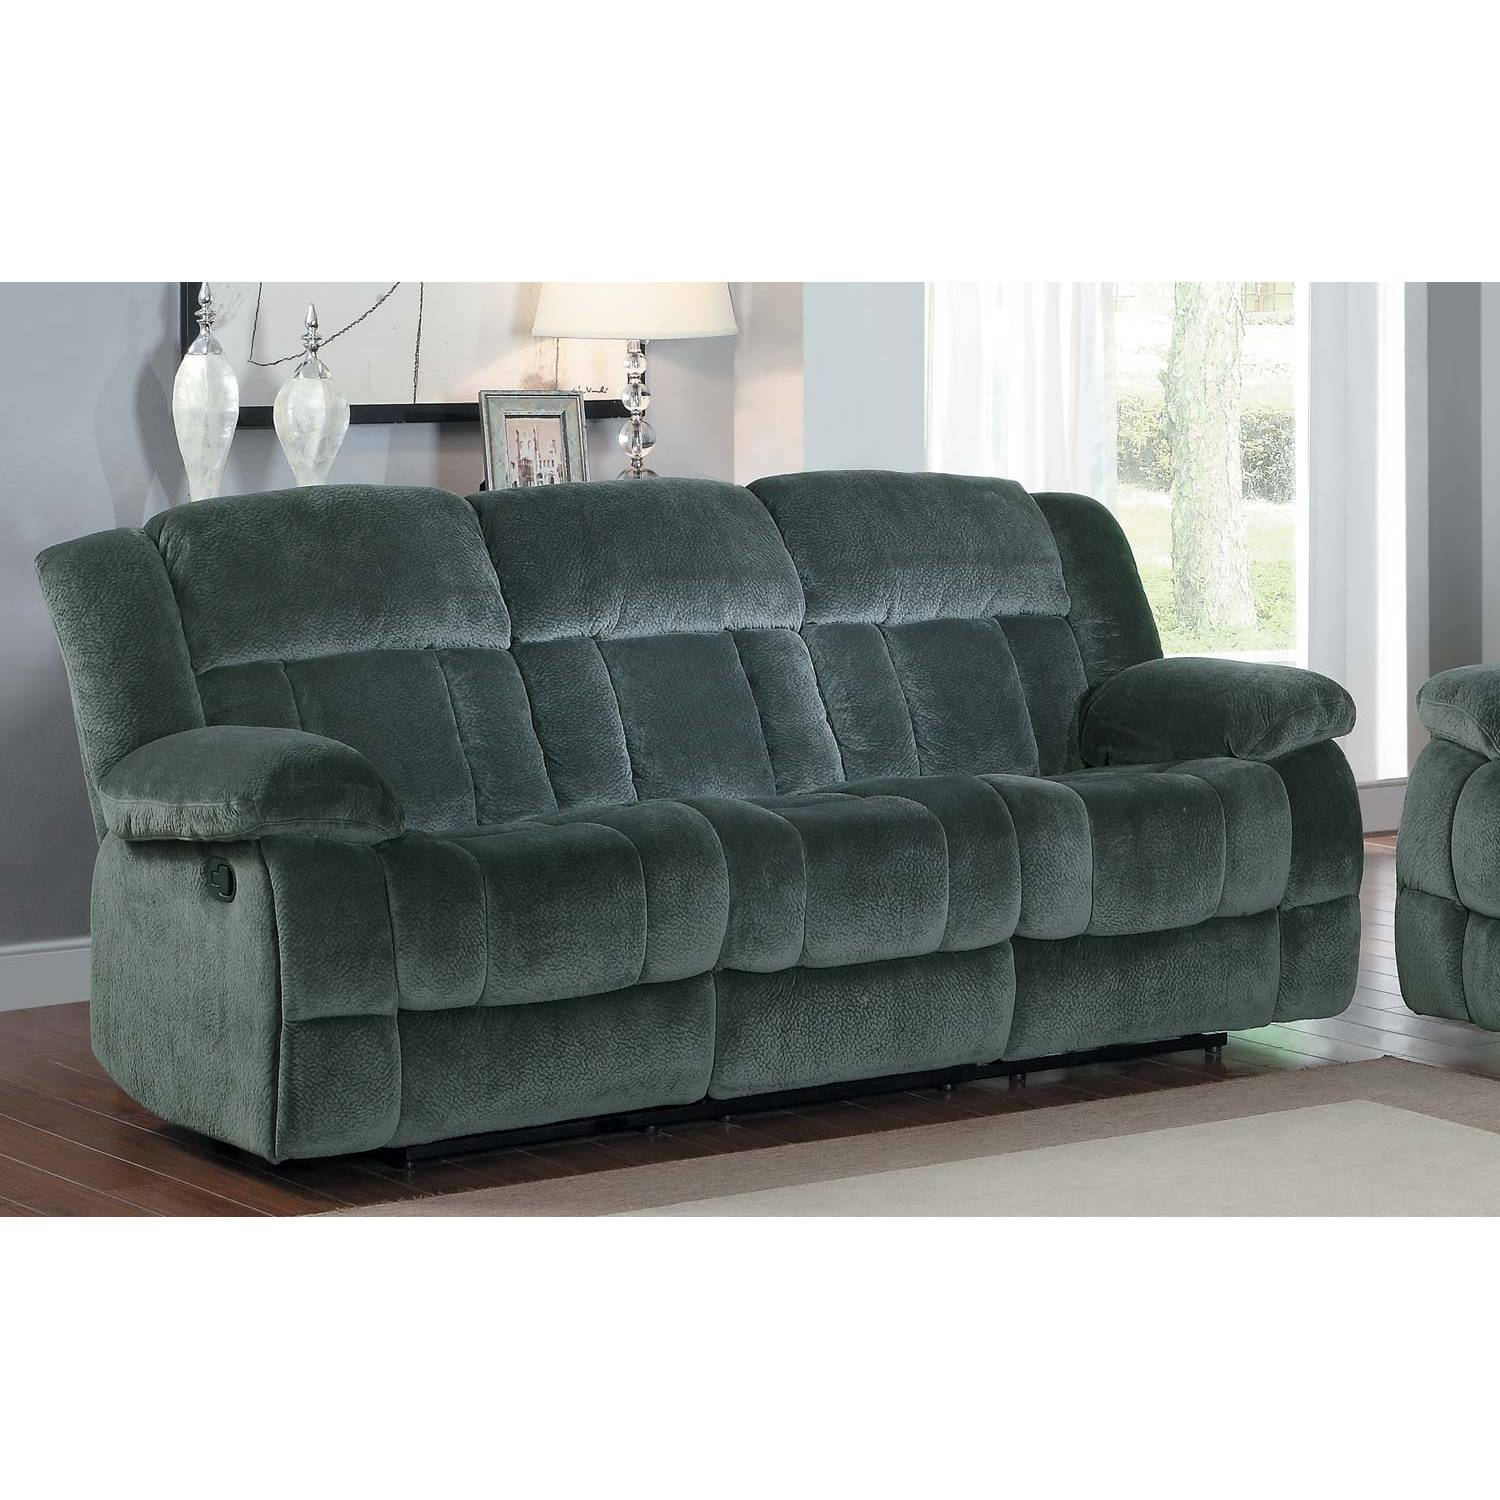 Gray Microfiber Reclining Sofa Ashley Furniture Couches